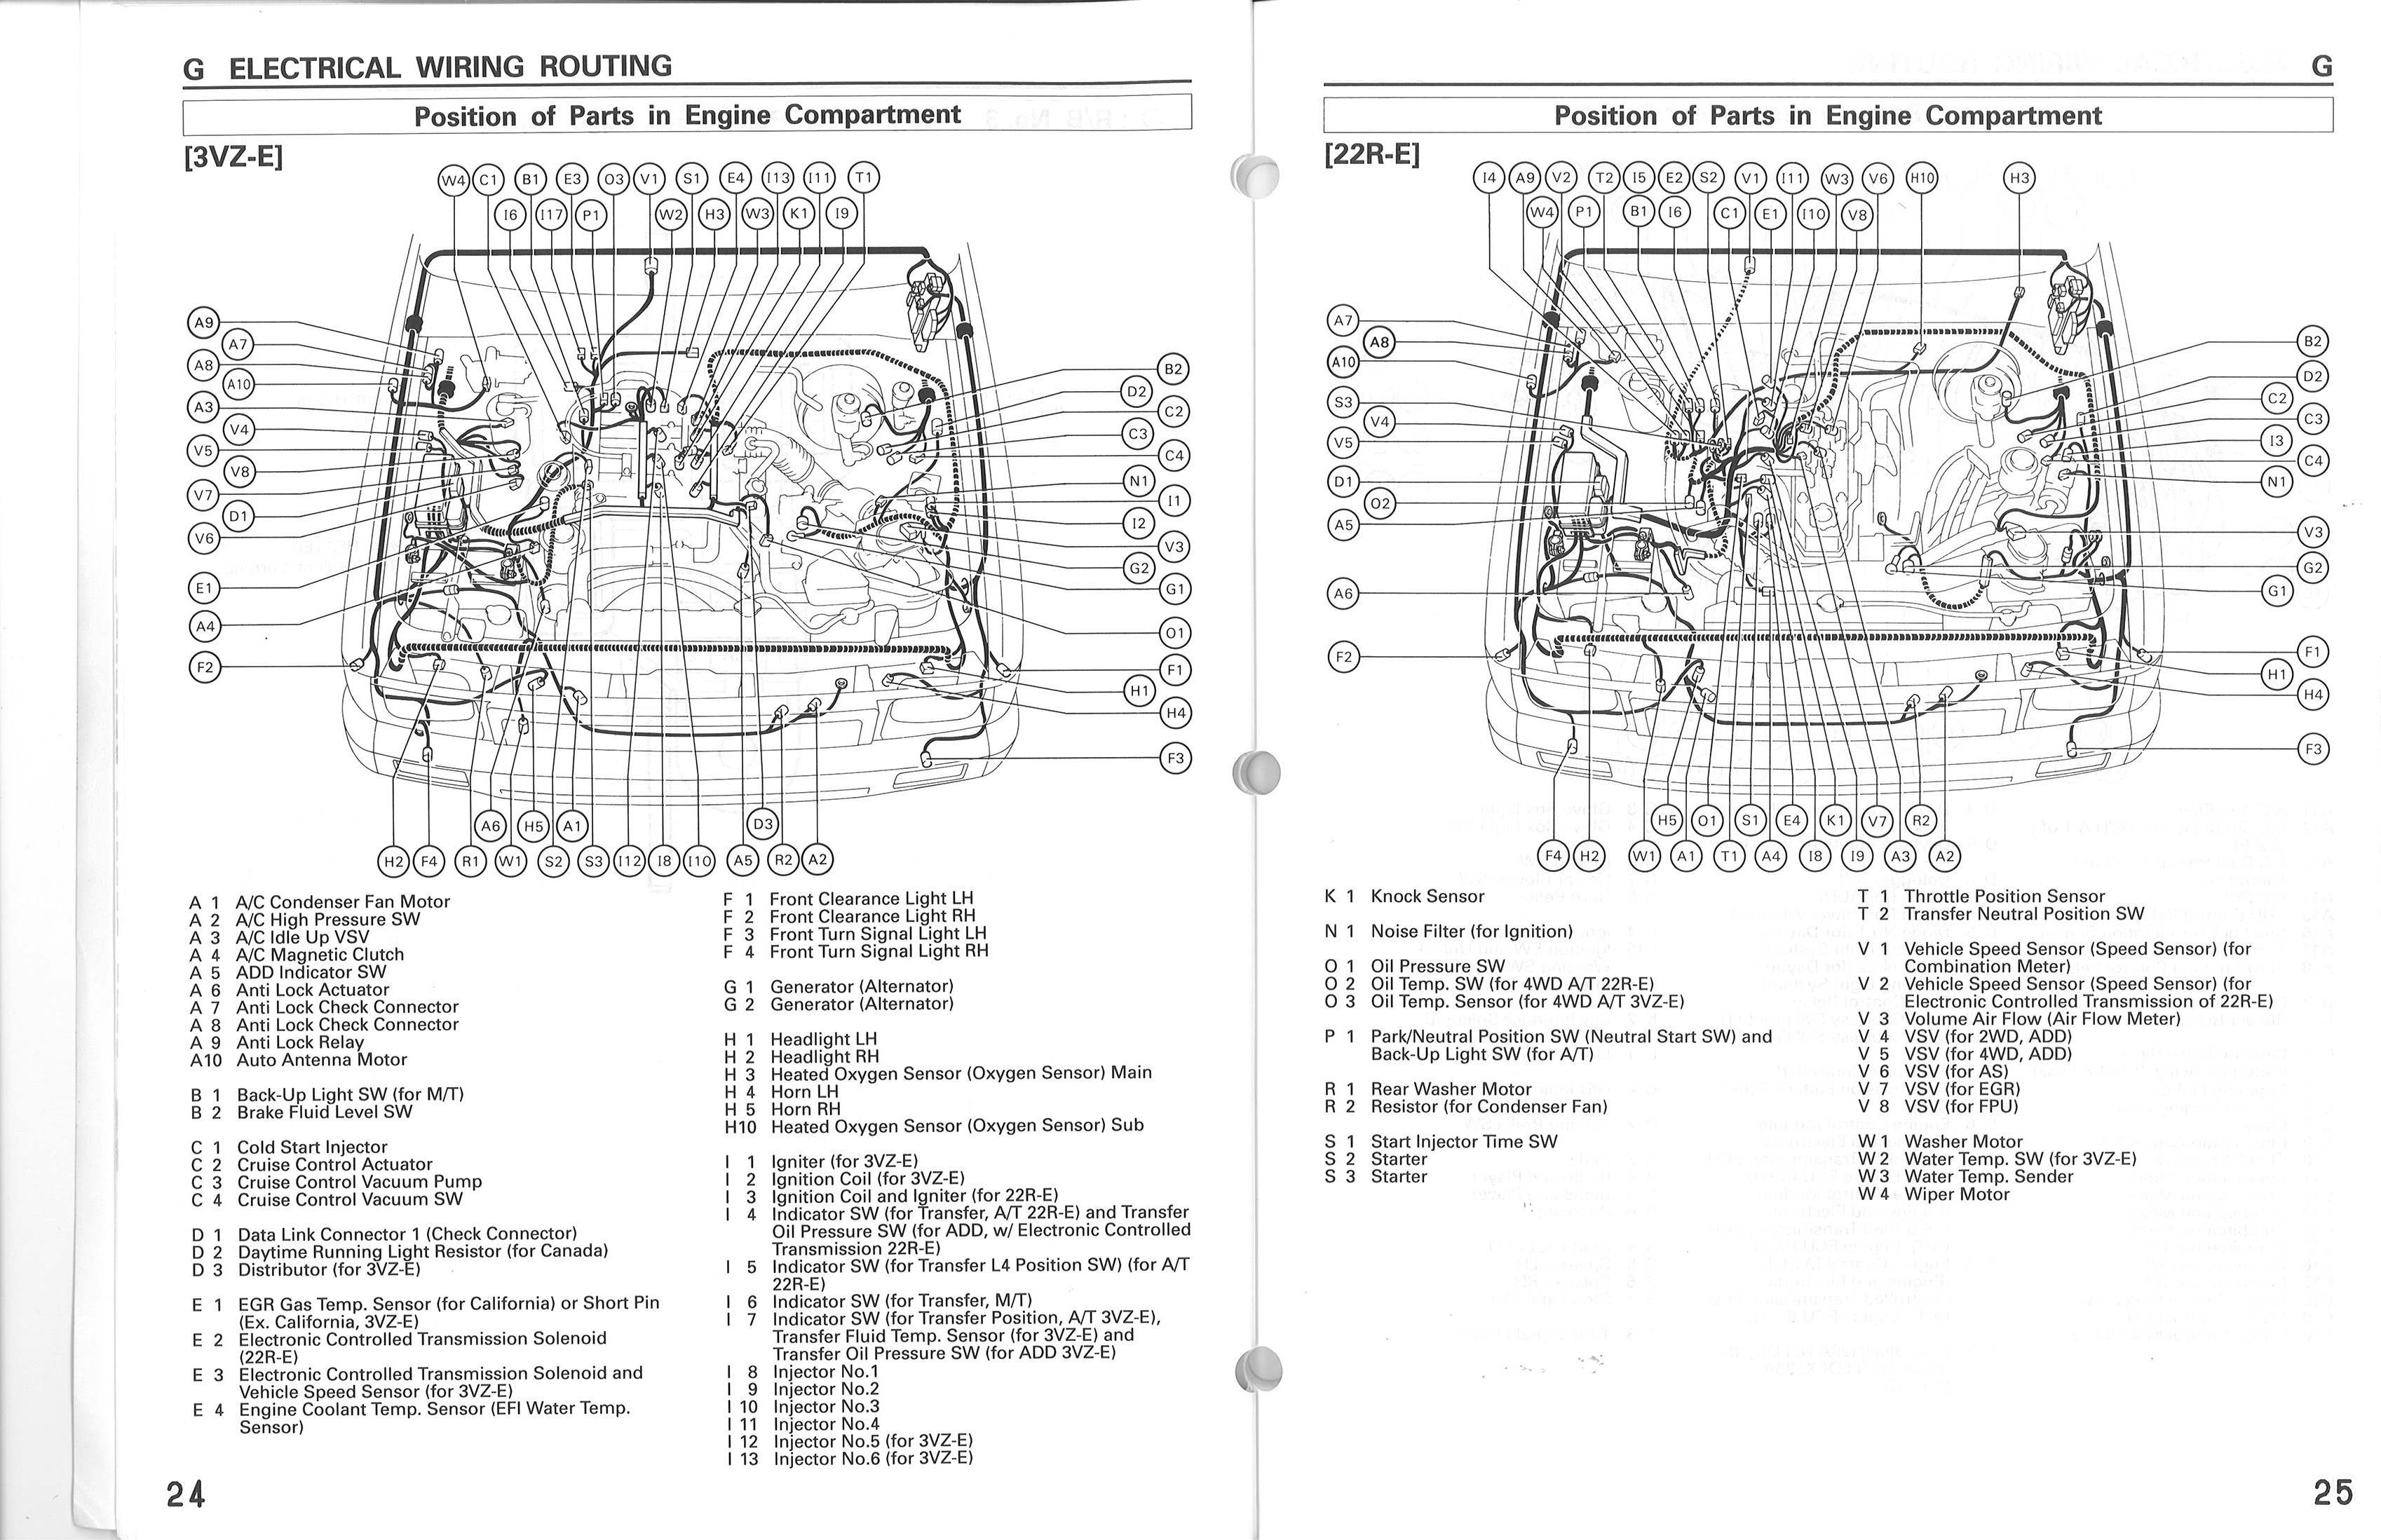 1995 nissan pickup engine diagram 2003 nissan altima exhaust system rh detoxicrecenze com